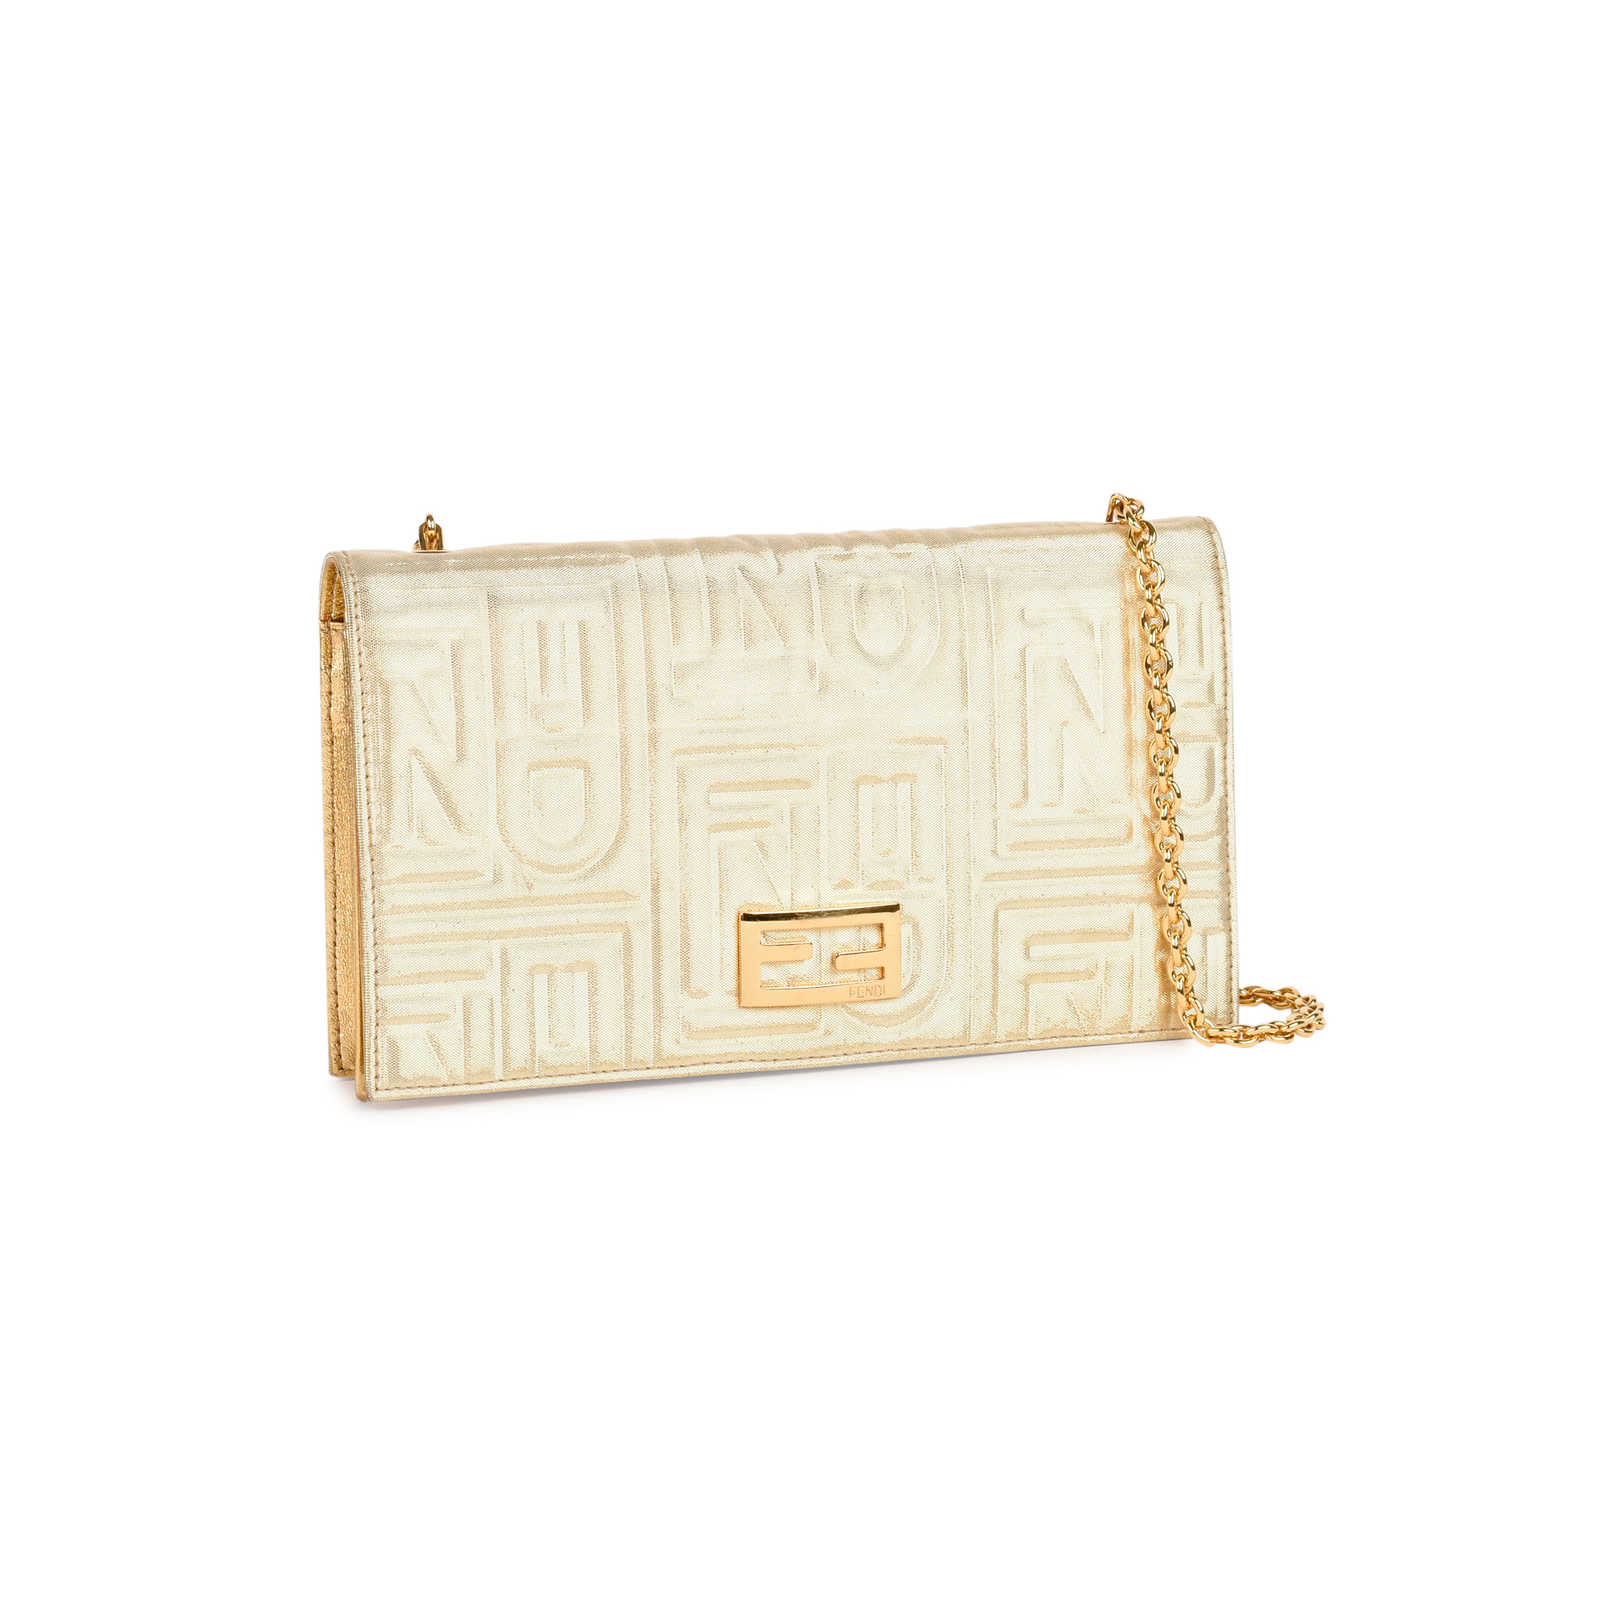 289f76c54d2f ... Authentic Second Hand Fendi Embossed Wallet on Chain Bag  (PSS-459-00004) ...